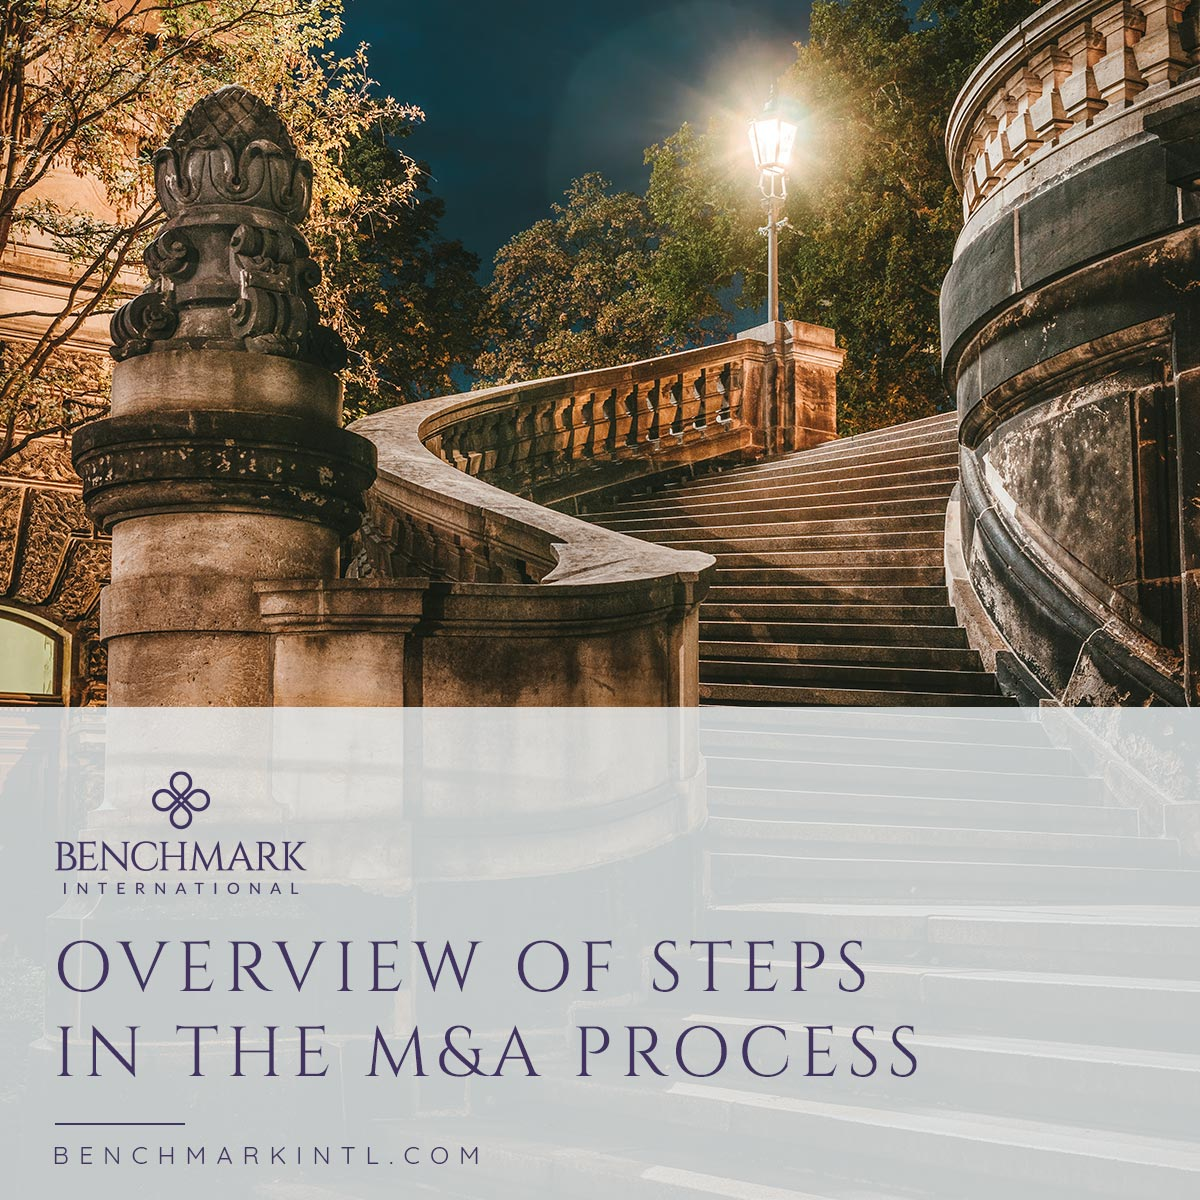 Overview_Of_Steps_In_The_M&A_Process_Social